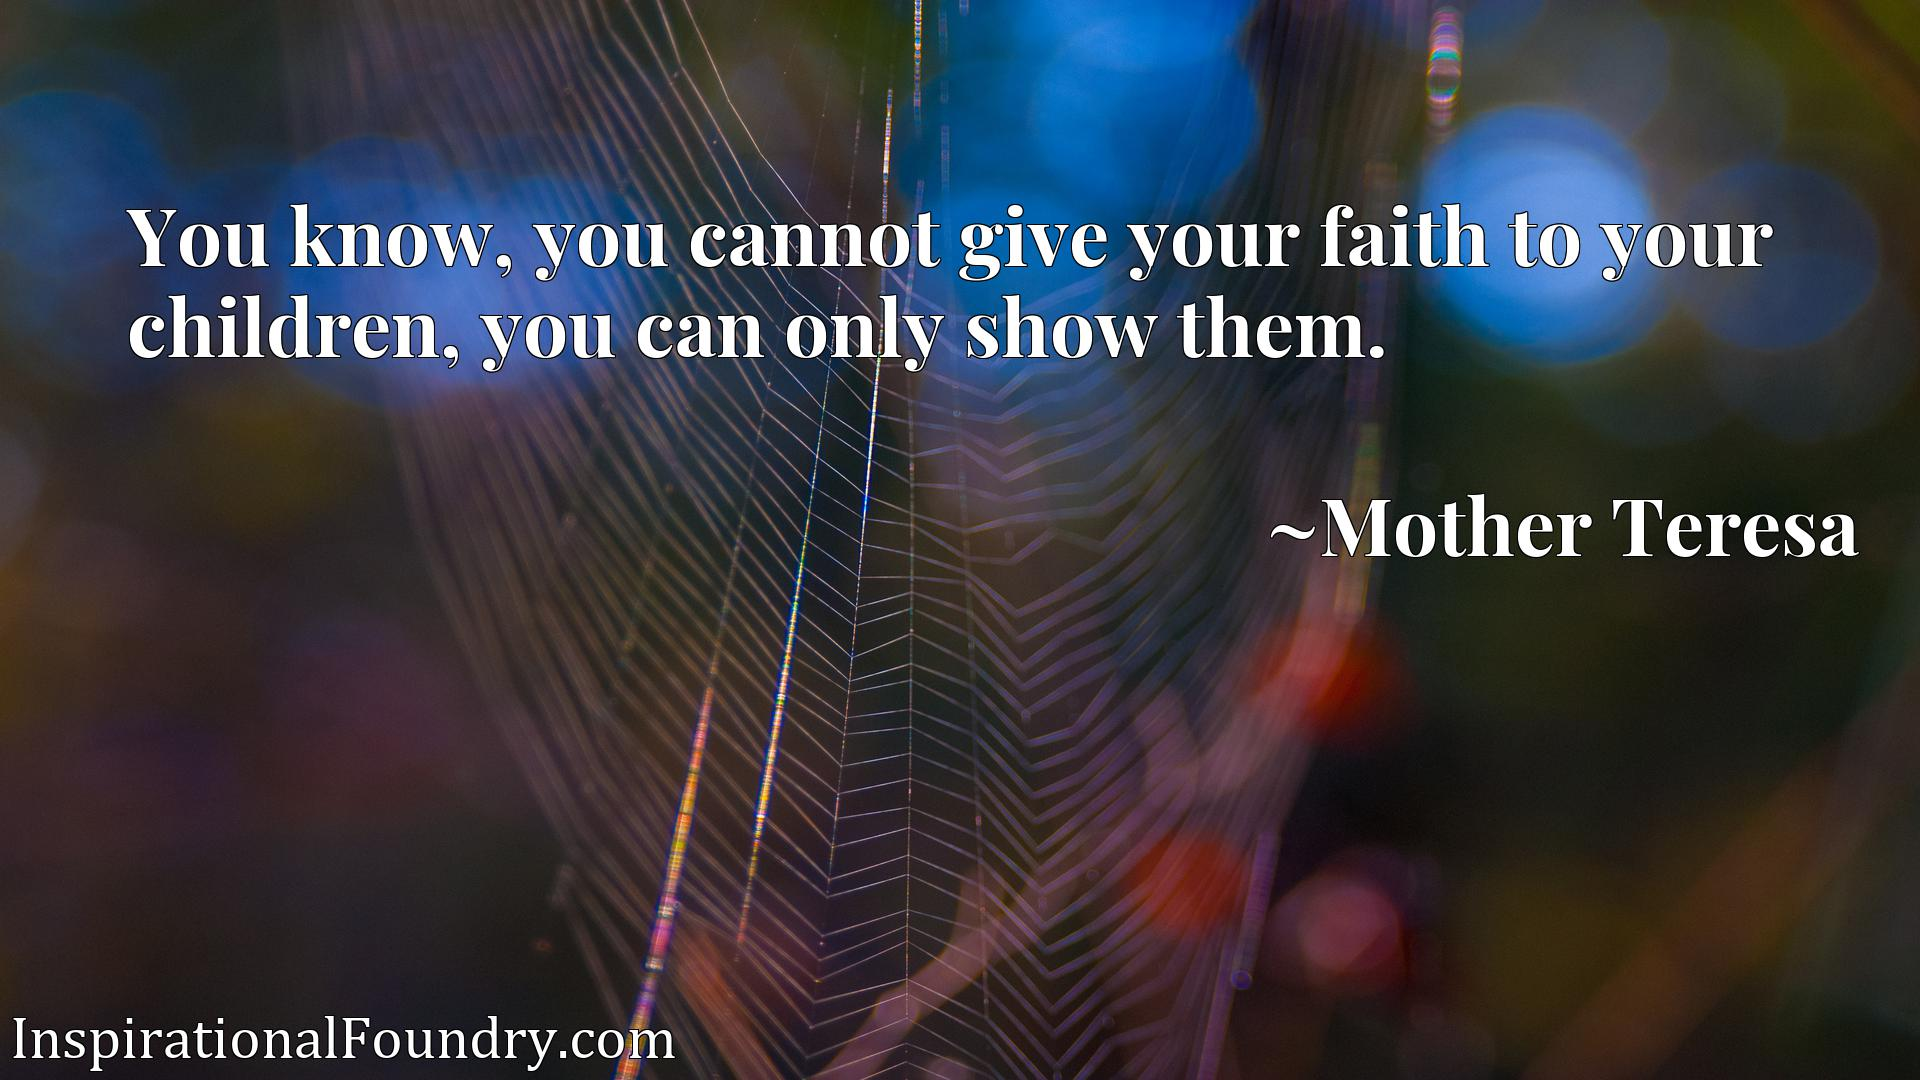 Quote Picture :You know, you cannot give your faith to your children, you can only show them.